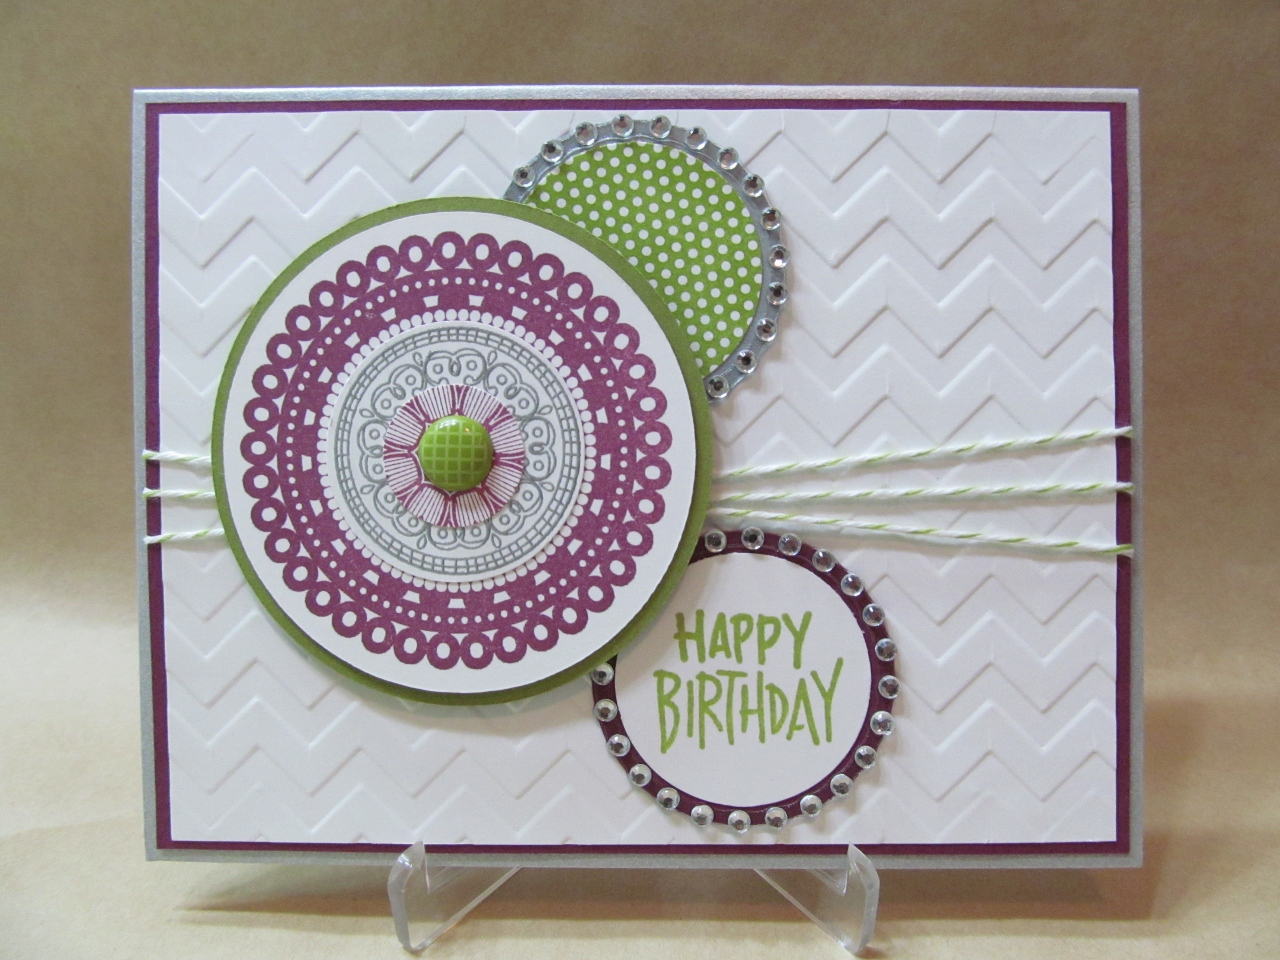 The Collection of Impressive and Beautiful Birthday Cards to Send Your Wishes to Father 4